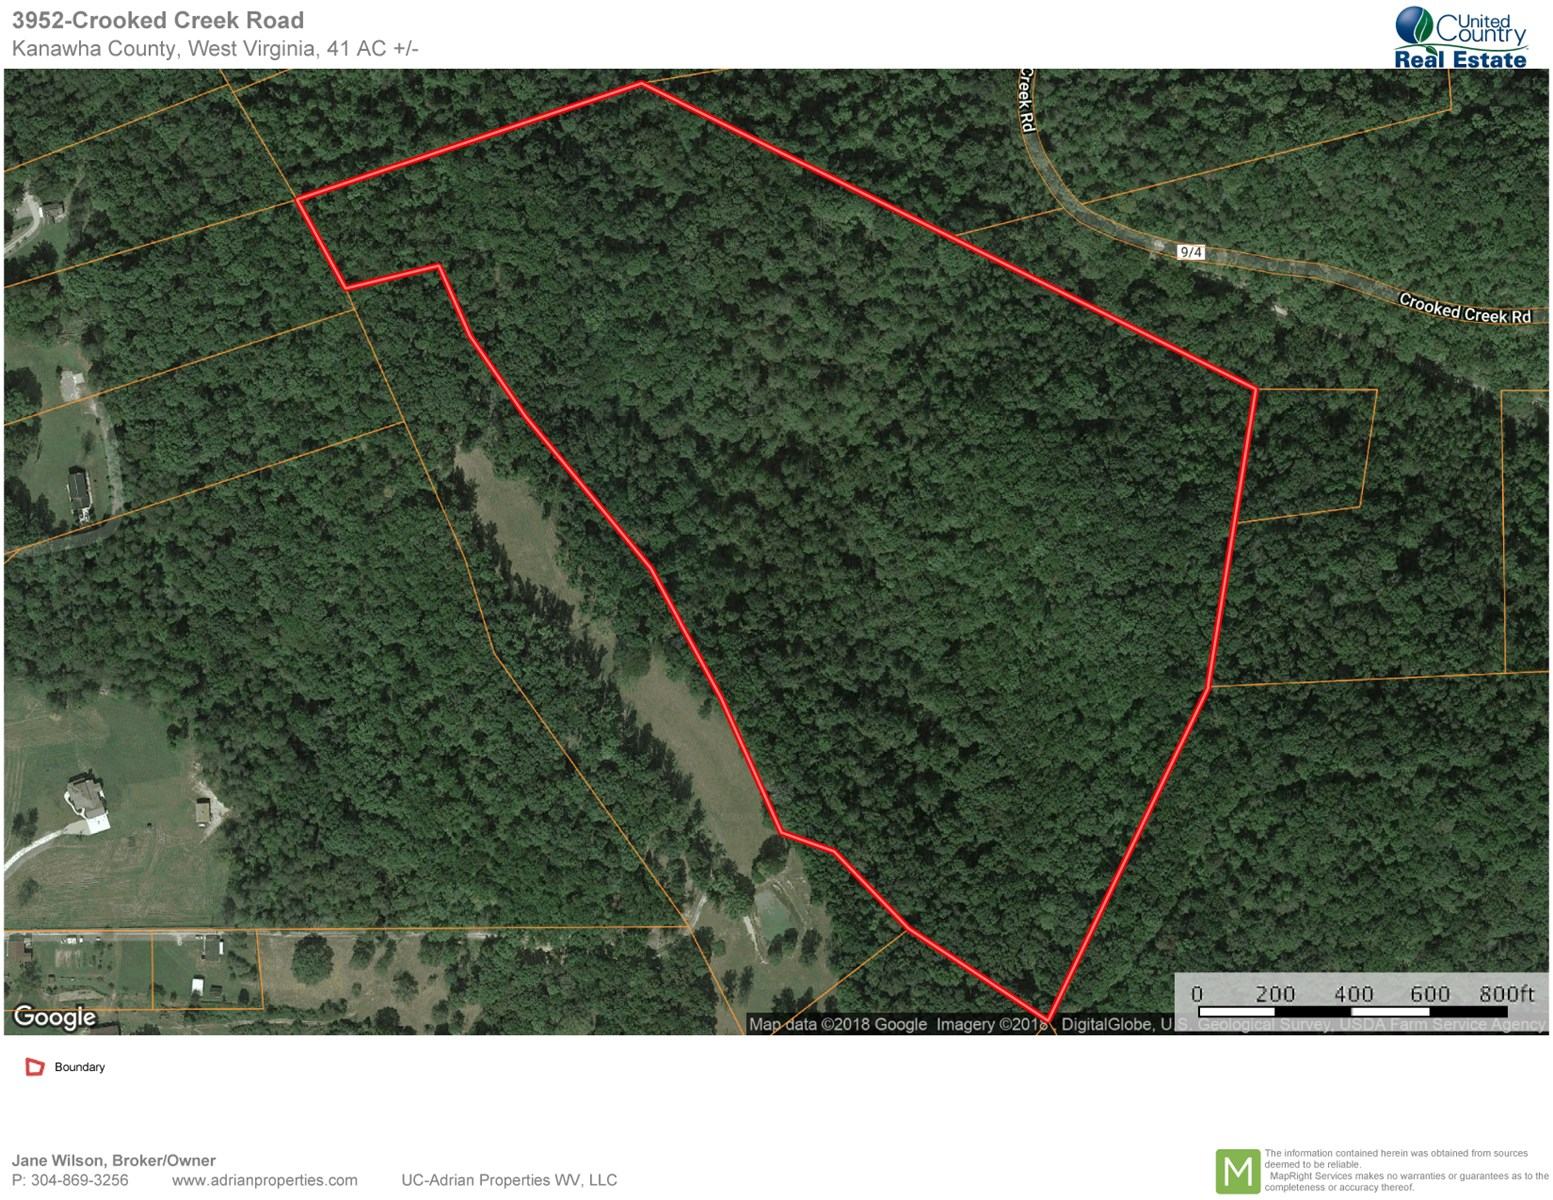 41 ACRES OF WV RESIDENTIAL/DEVELOPMENT LAND